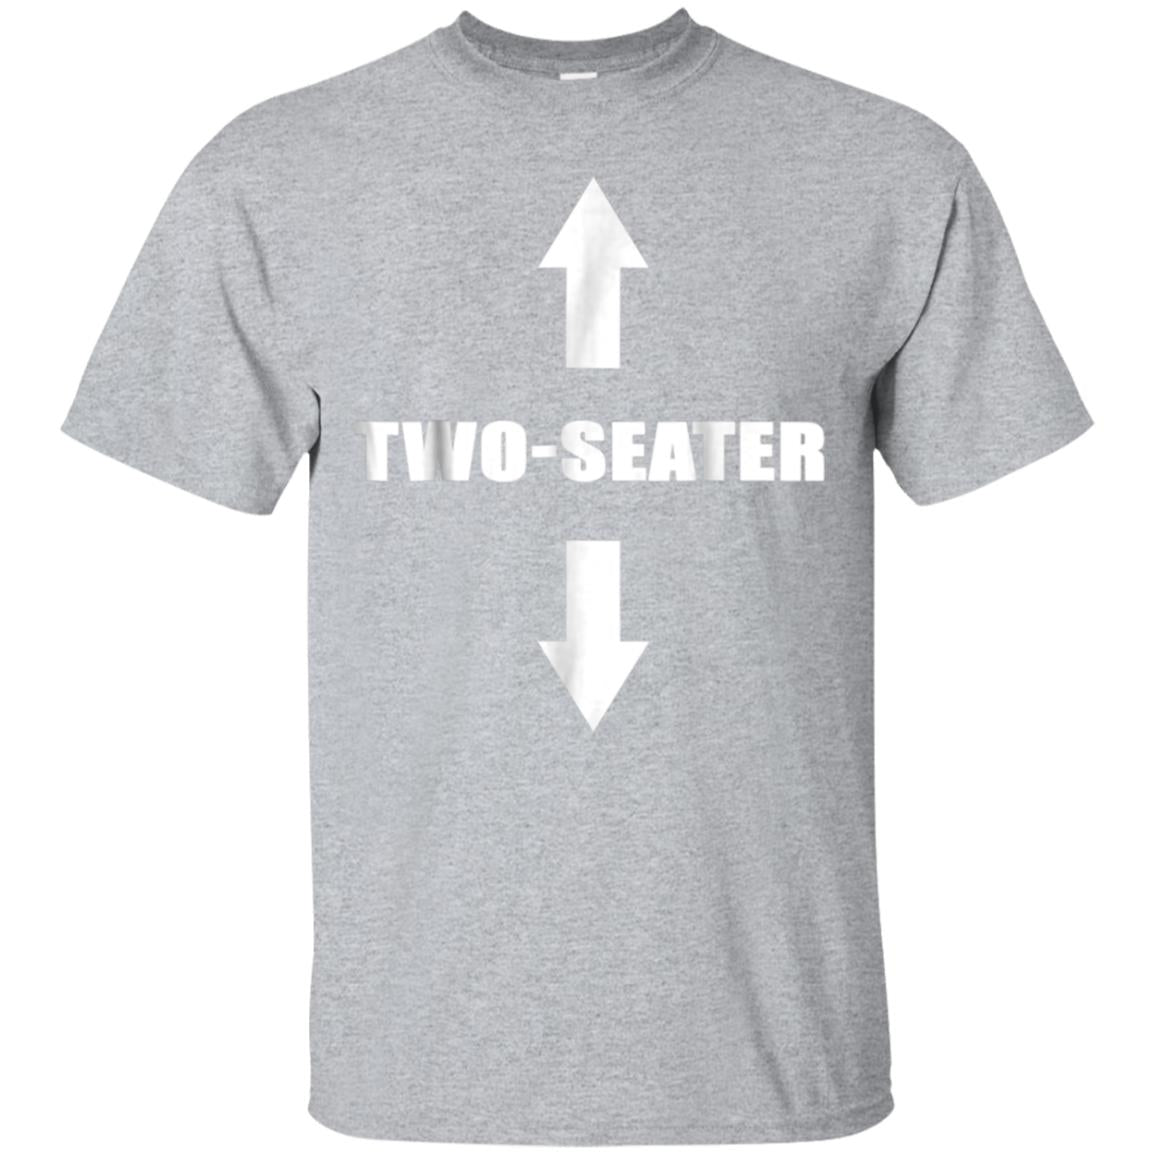 Two Seater T-Shirt  Funny Gag Gift Dad Joke Tee 99promocode